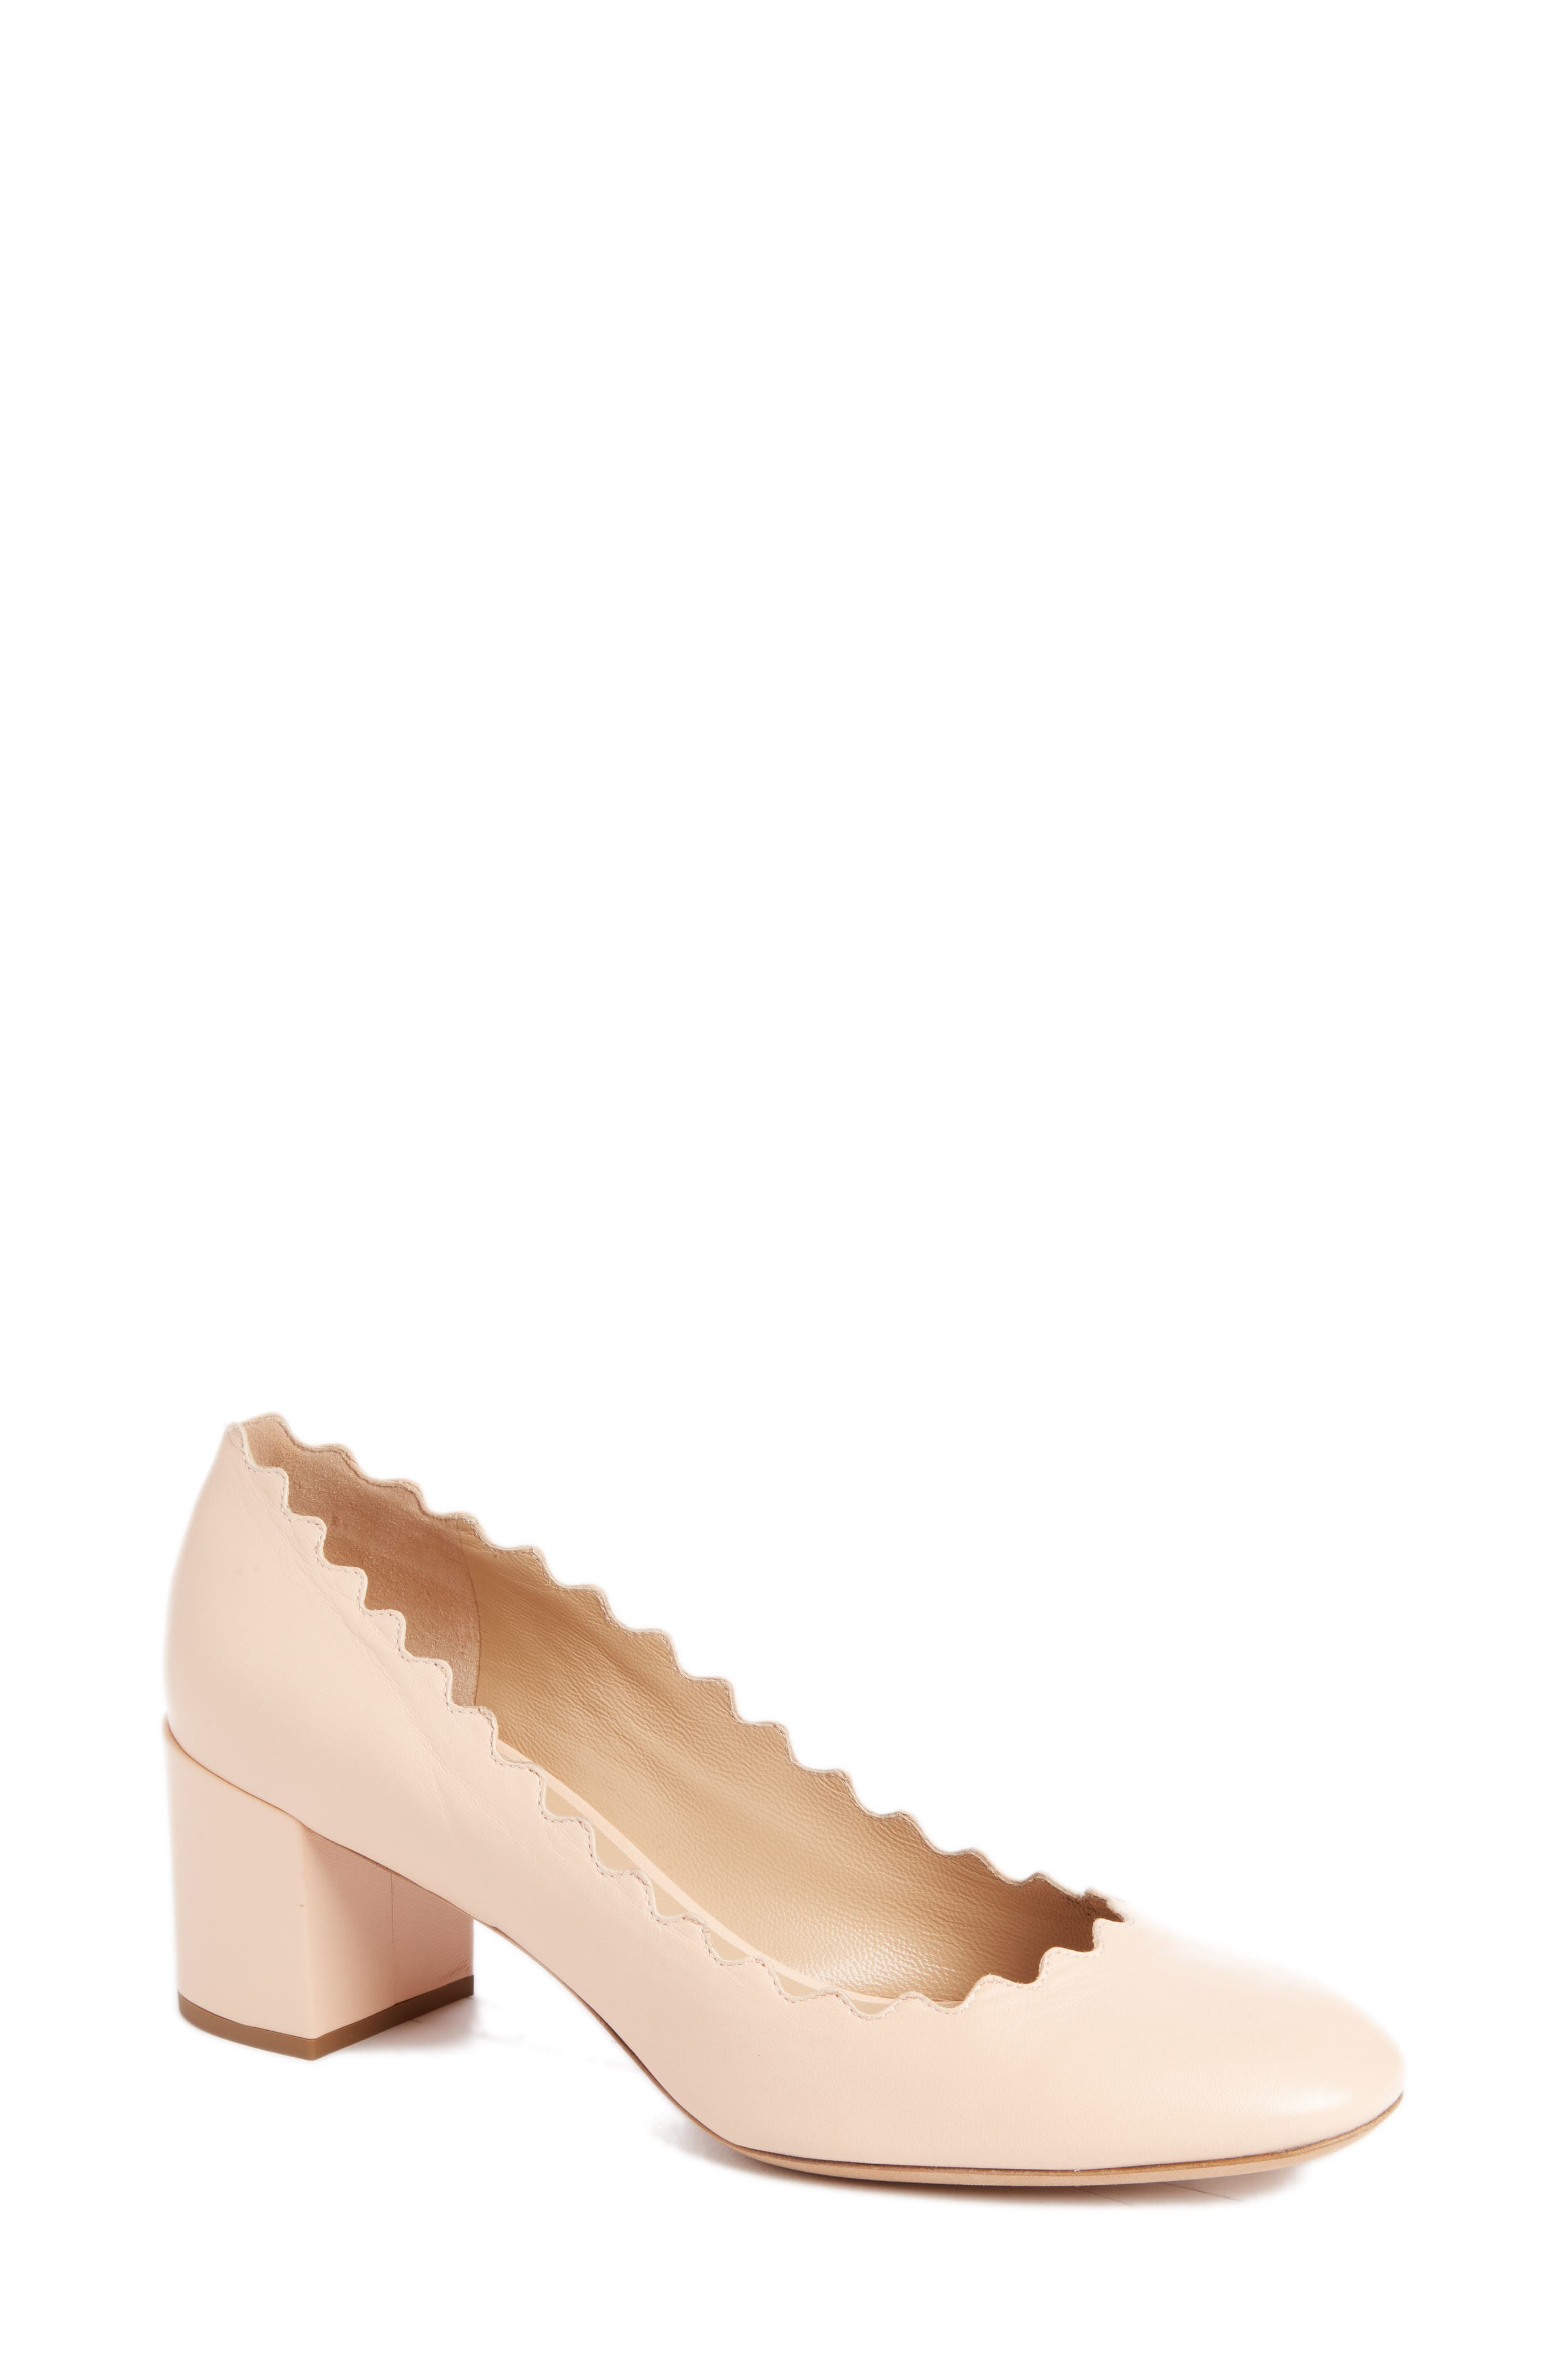 Lauren Scalloped Pump,                         Main,                         color, Honey Nude